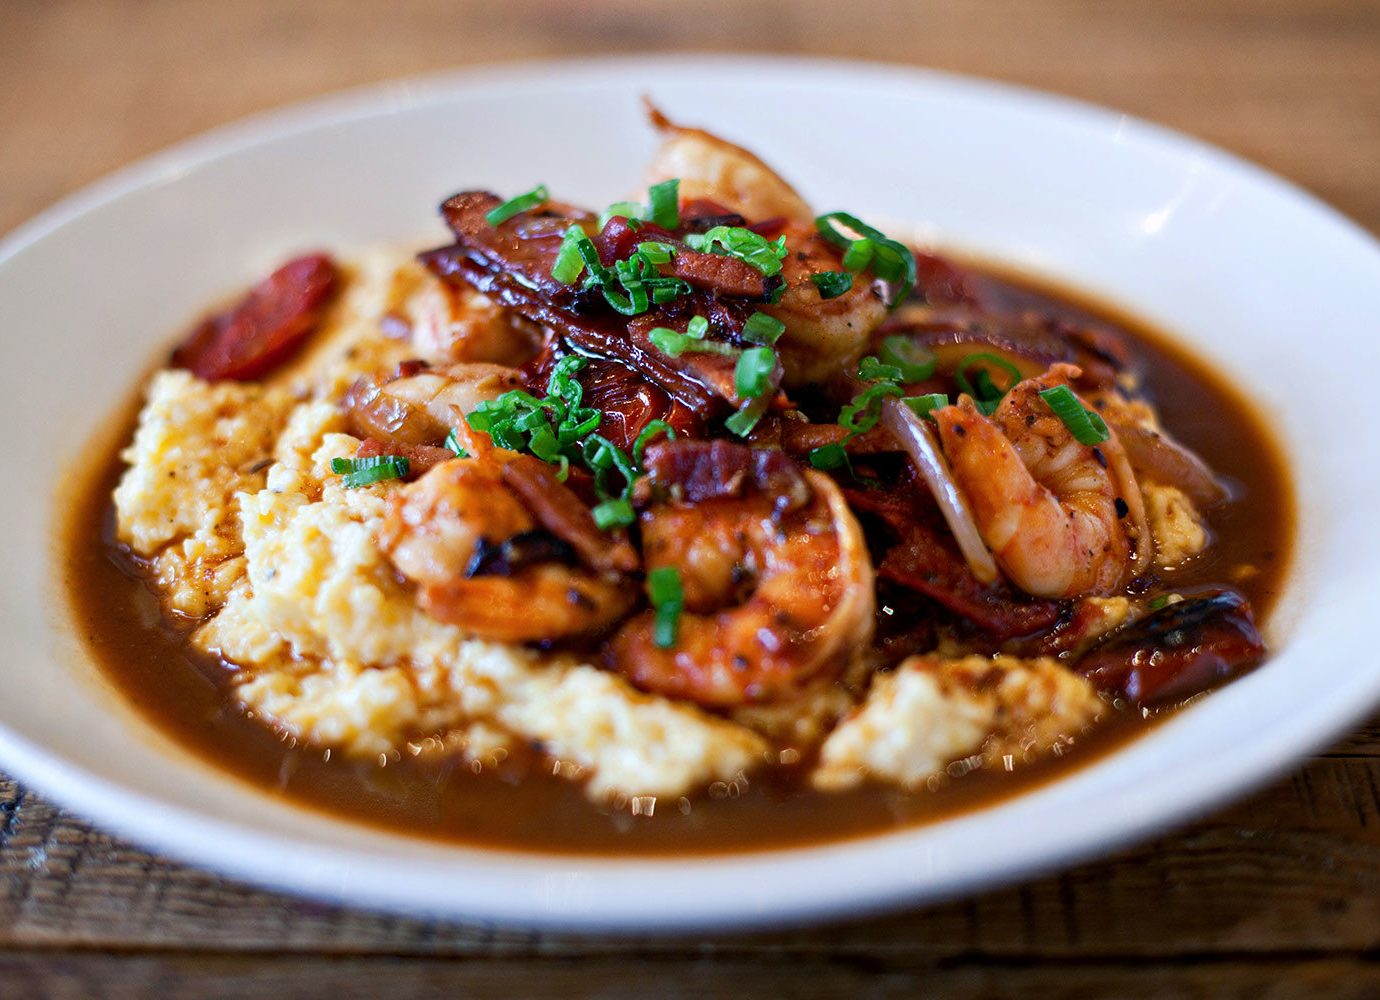 Travel Tips plate food table dish indoor cuisine Seafood animal source foods shrimp gumbo vegetable curry asian food thai food recipe meat soup